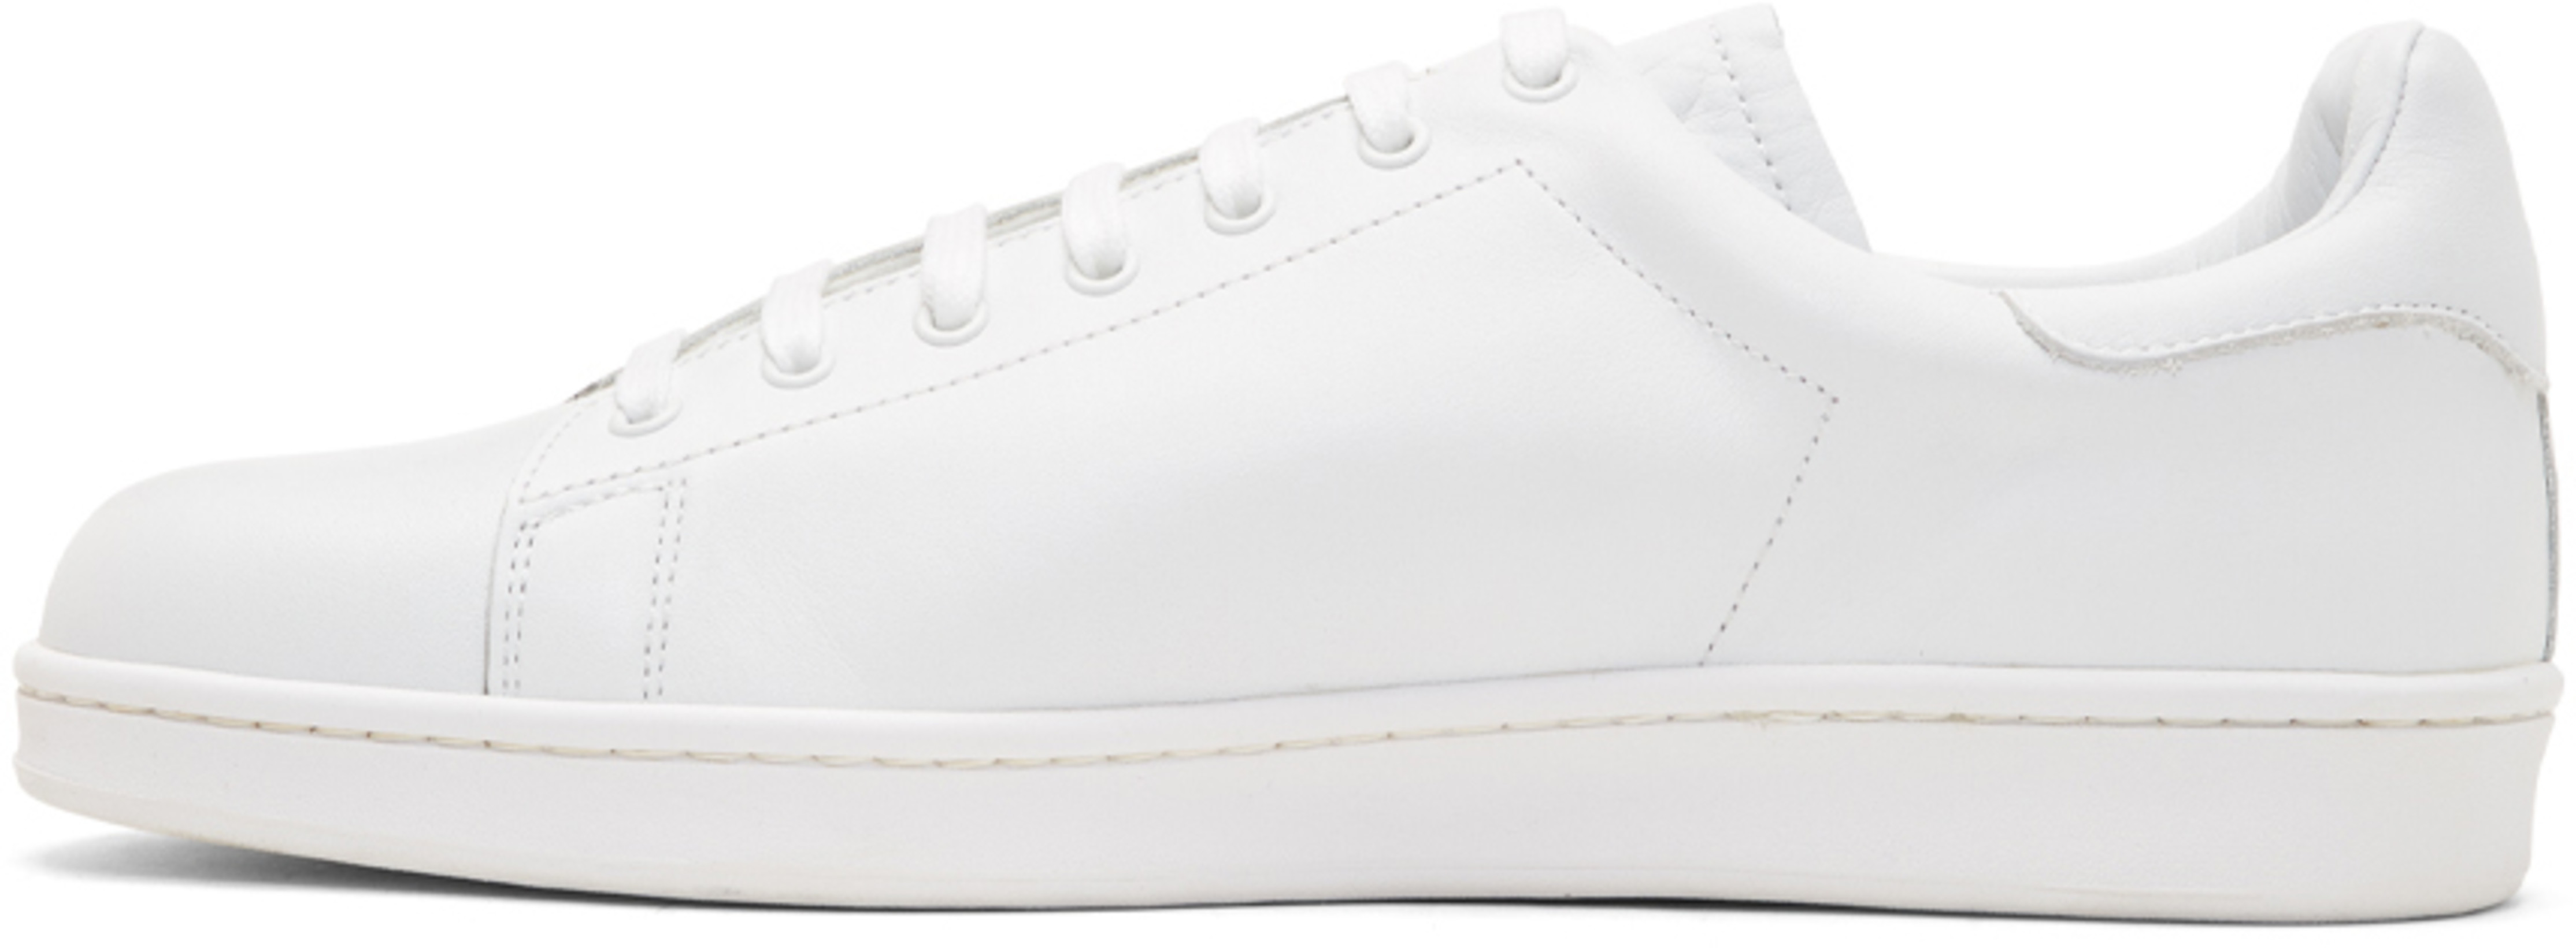 """Undercover White """"Brainwashed Generation"""" Sneakers"""